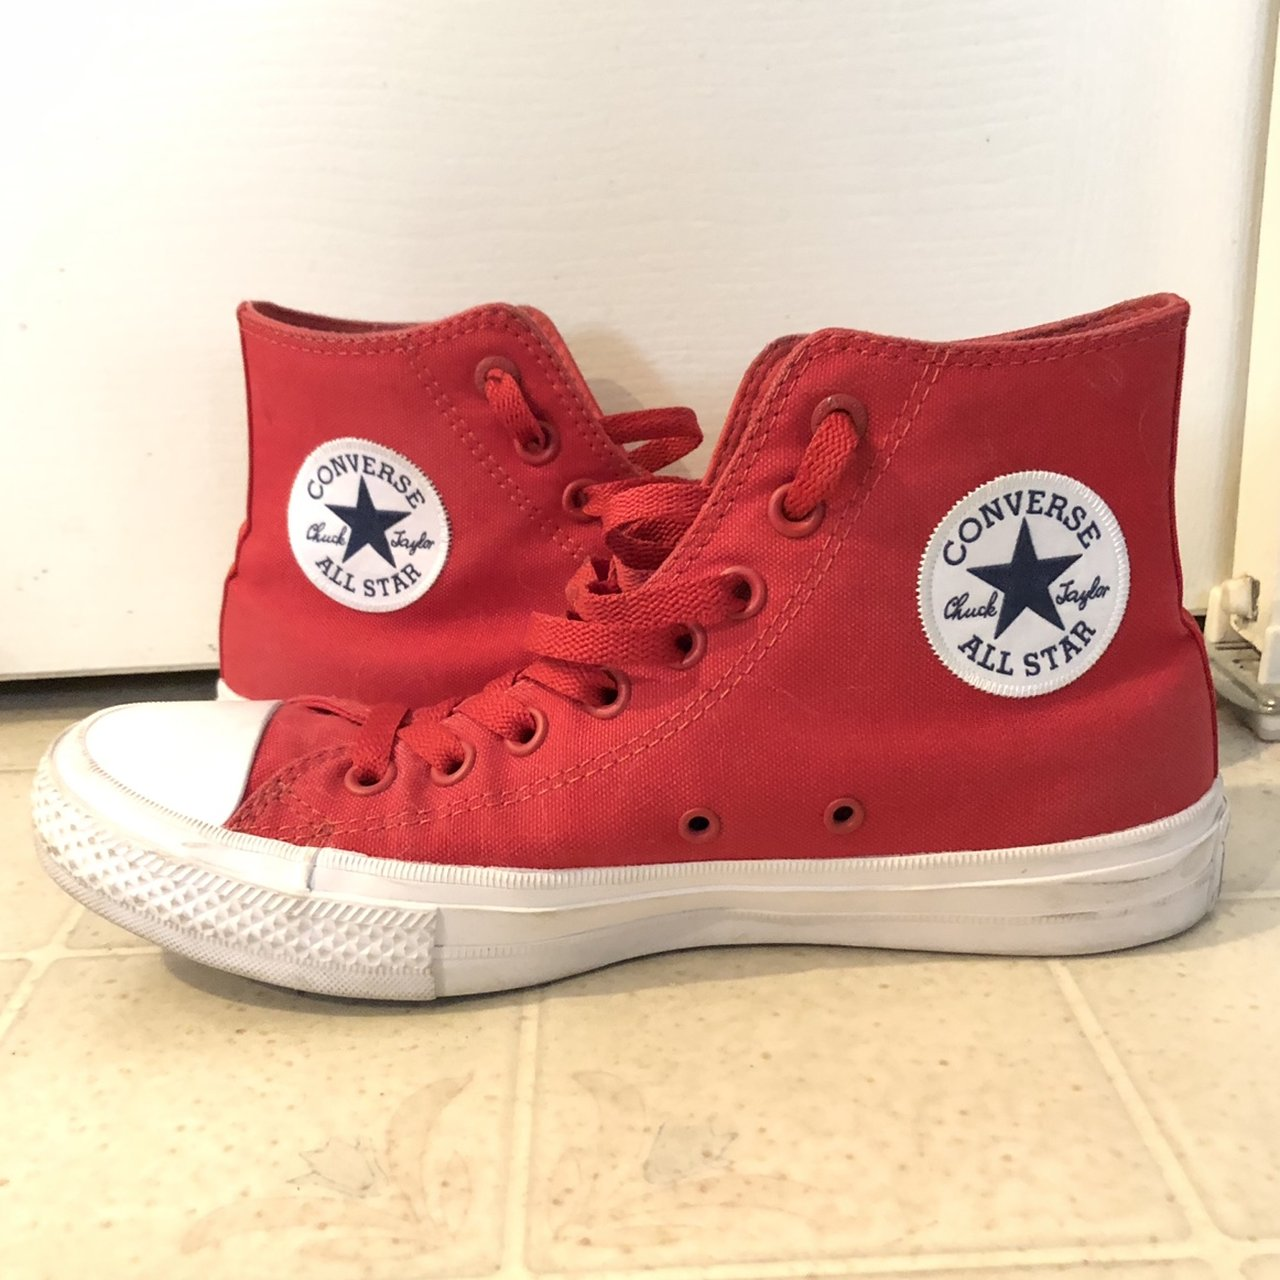 9b8034989d2  hockeydoctor13. 3 months ago. United States. Red and white Converse